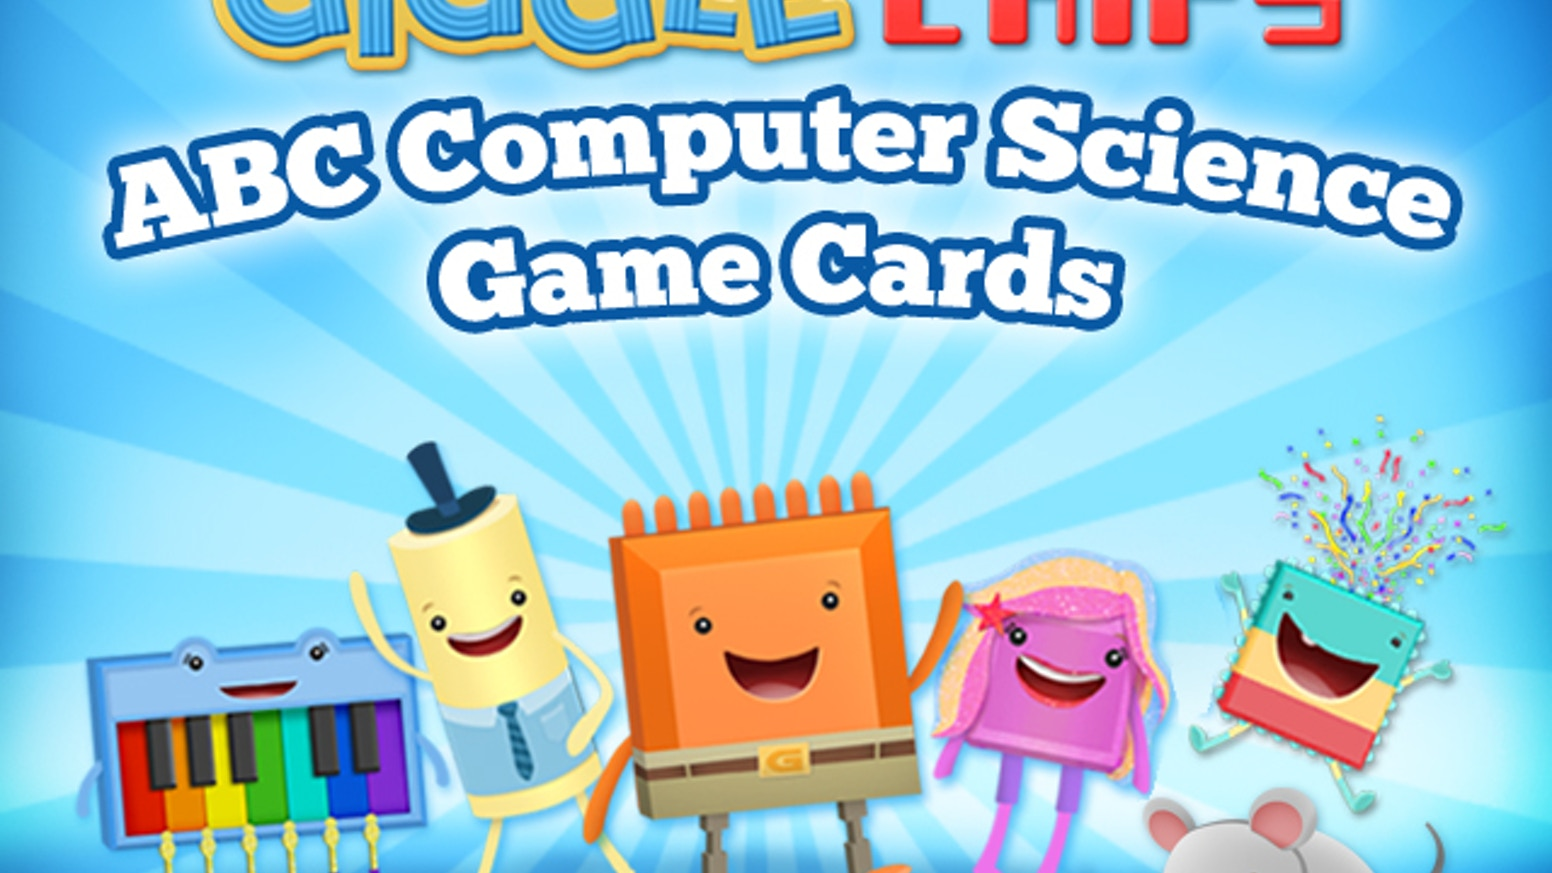 Giggle Chips Abc Computer Science Game Cards By Jennifer Ellis Code And Circuit Board Background Illustration Inspire Your Childs Curiosity To Learn Coding Literacy With Our Fun Stem